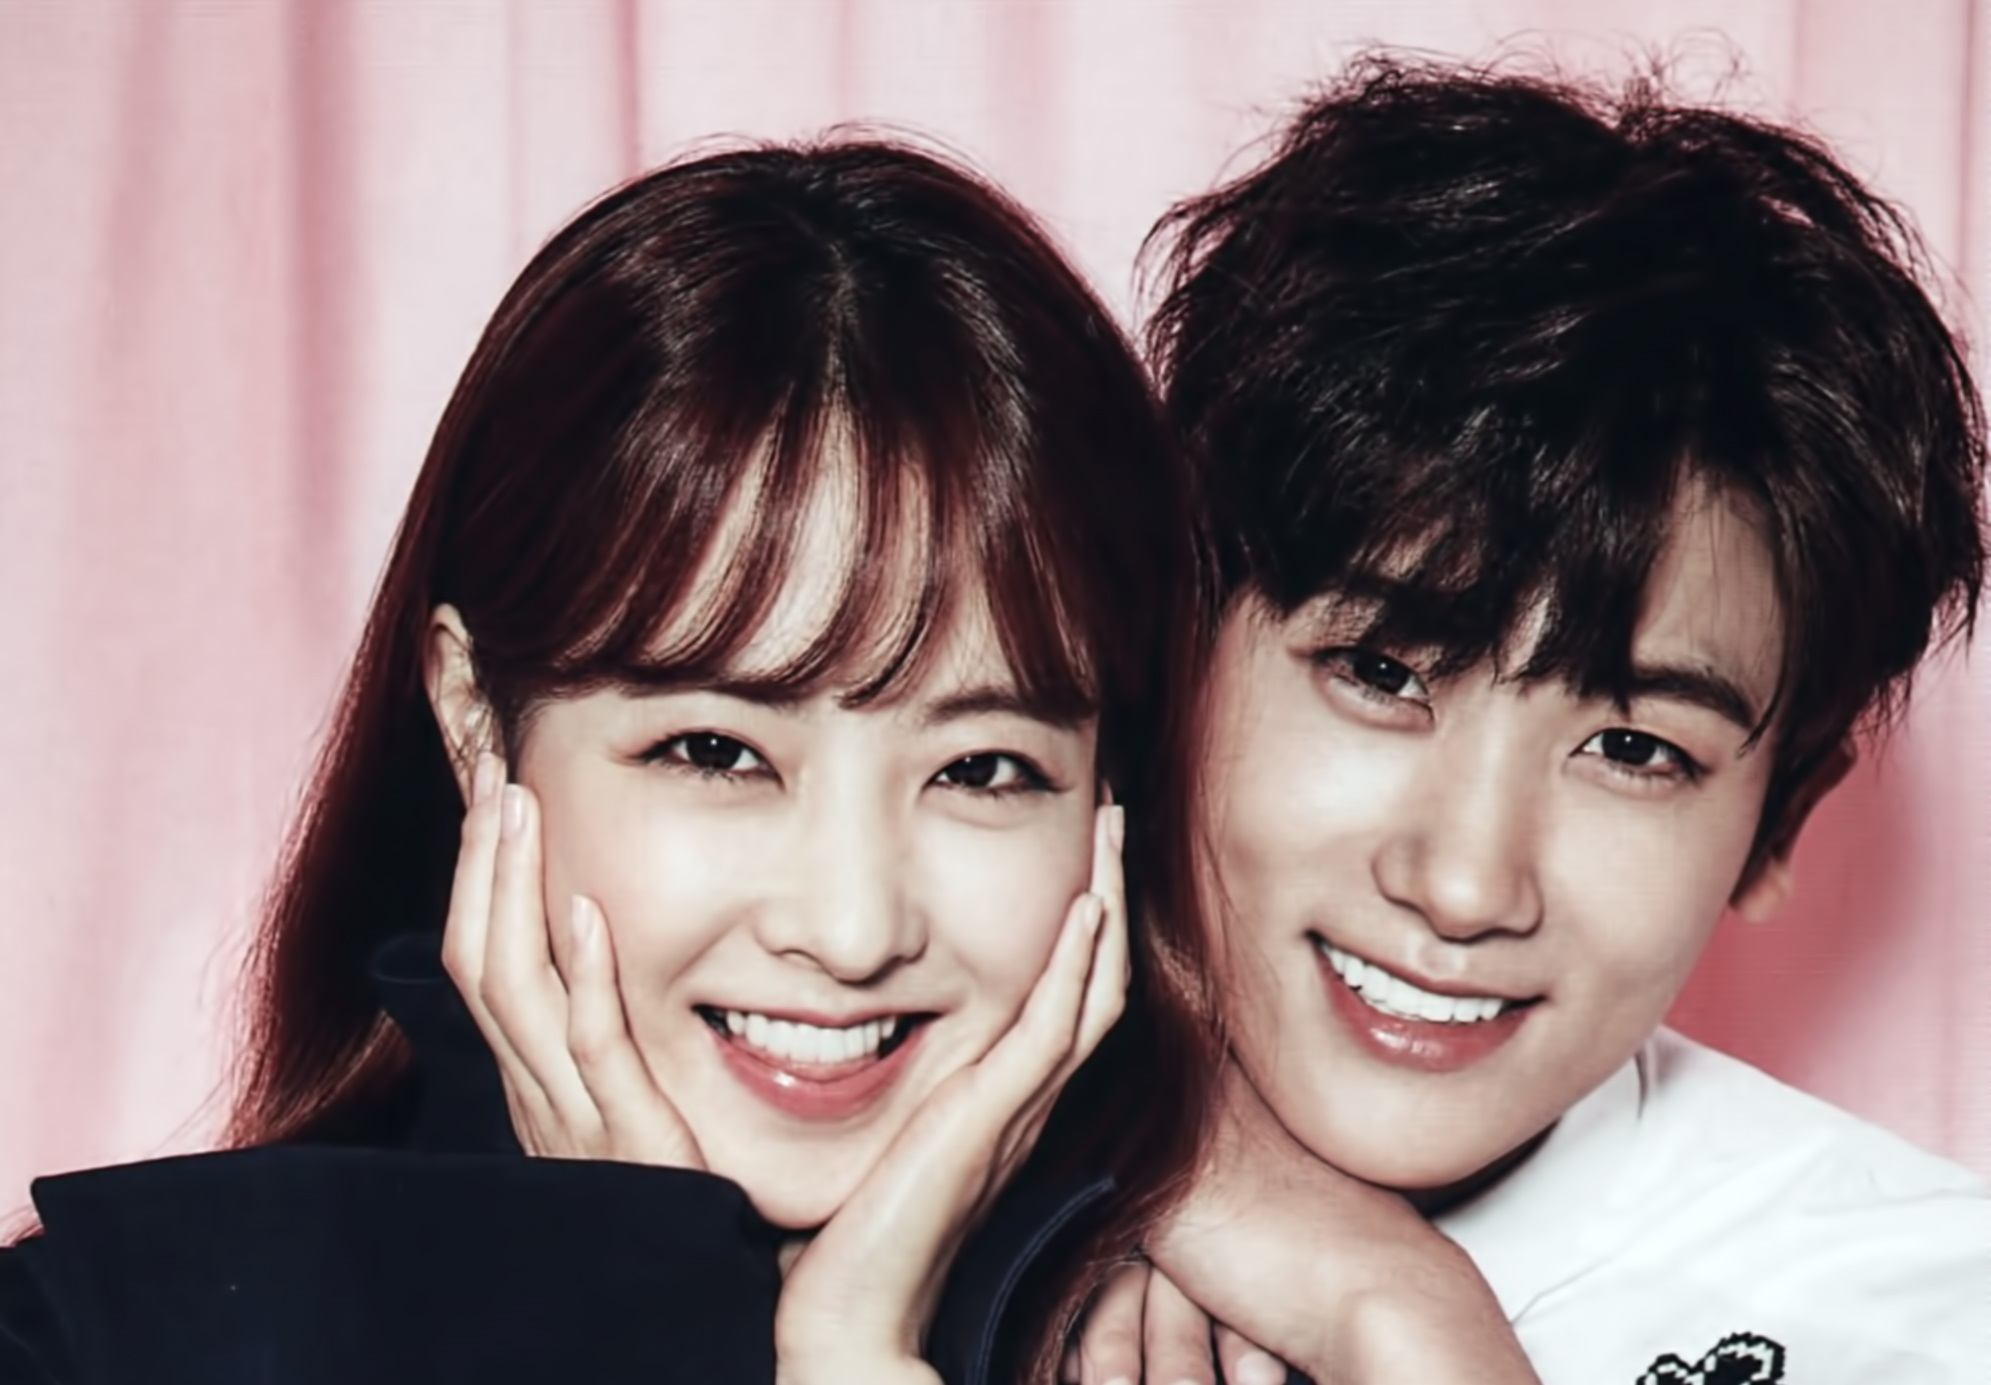 Fans shocked by Park Bo Young and Park Hyung Sik's height difference